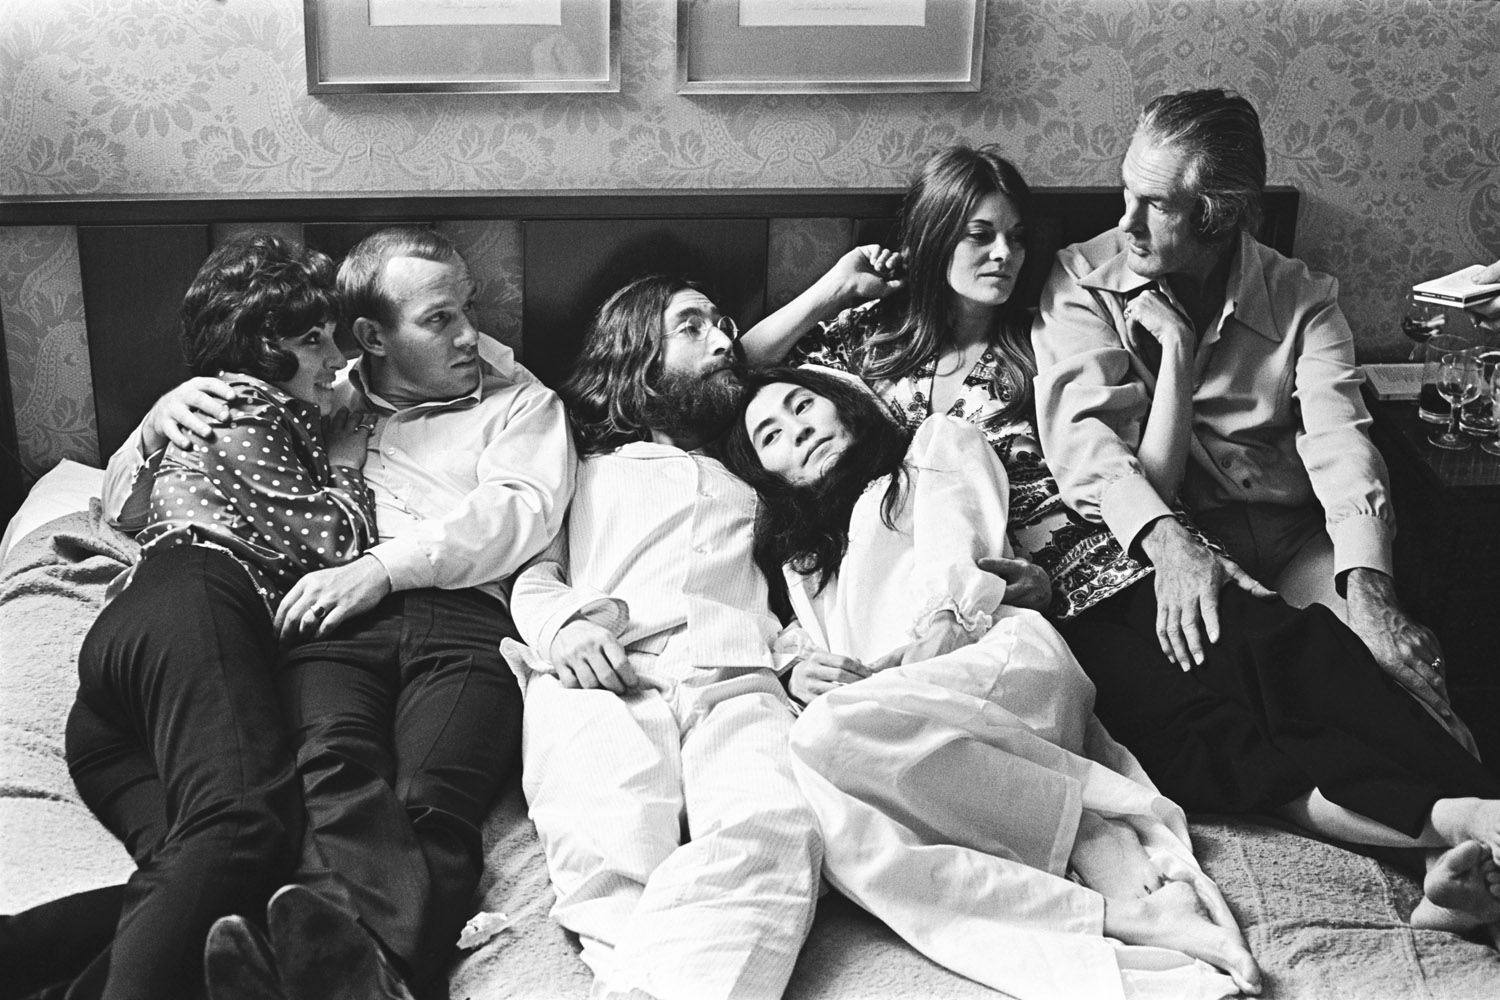 The following photographs are previously unseen images of John Lennon and Yoko Ono during their  Bed In  for peace at Montreal's Queen Elizabeth Hotel in June 1969. Here, Tommy Smothers, an unknown friend, John Lennon, Yoko Ono, Rosemary Leary and Timothy Leary.